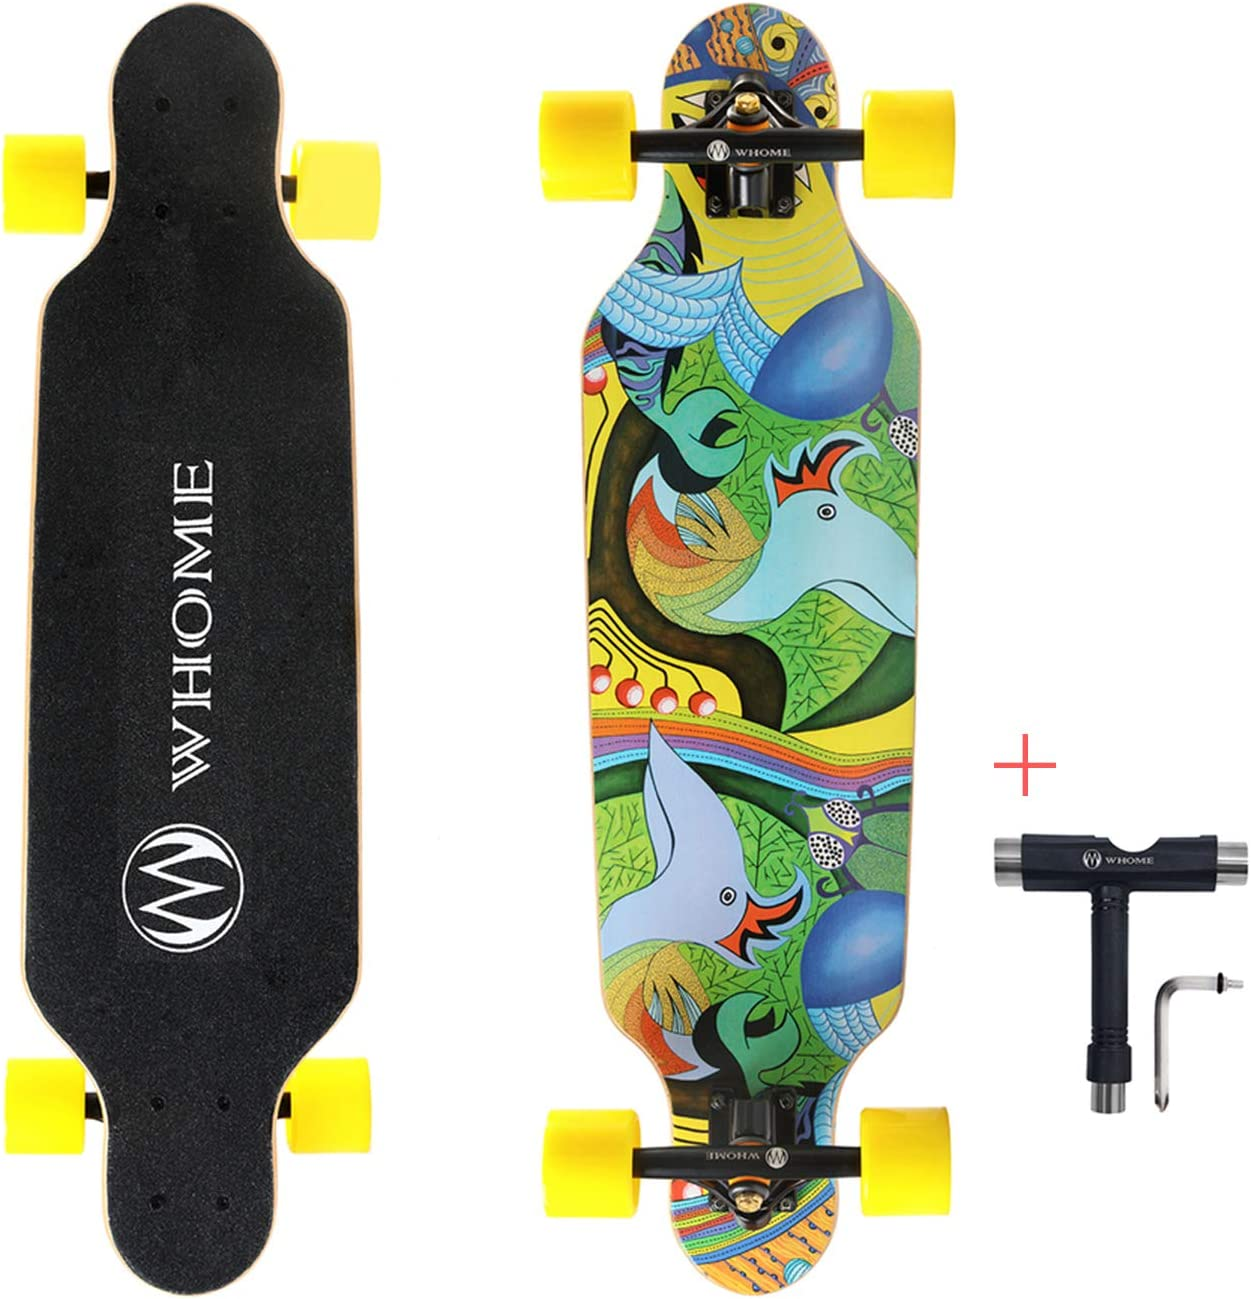 Whome Small Carving Longboard